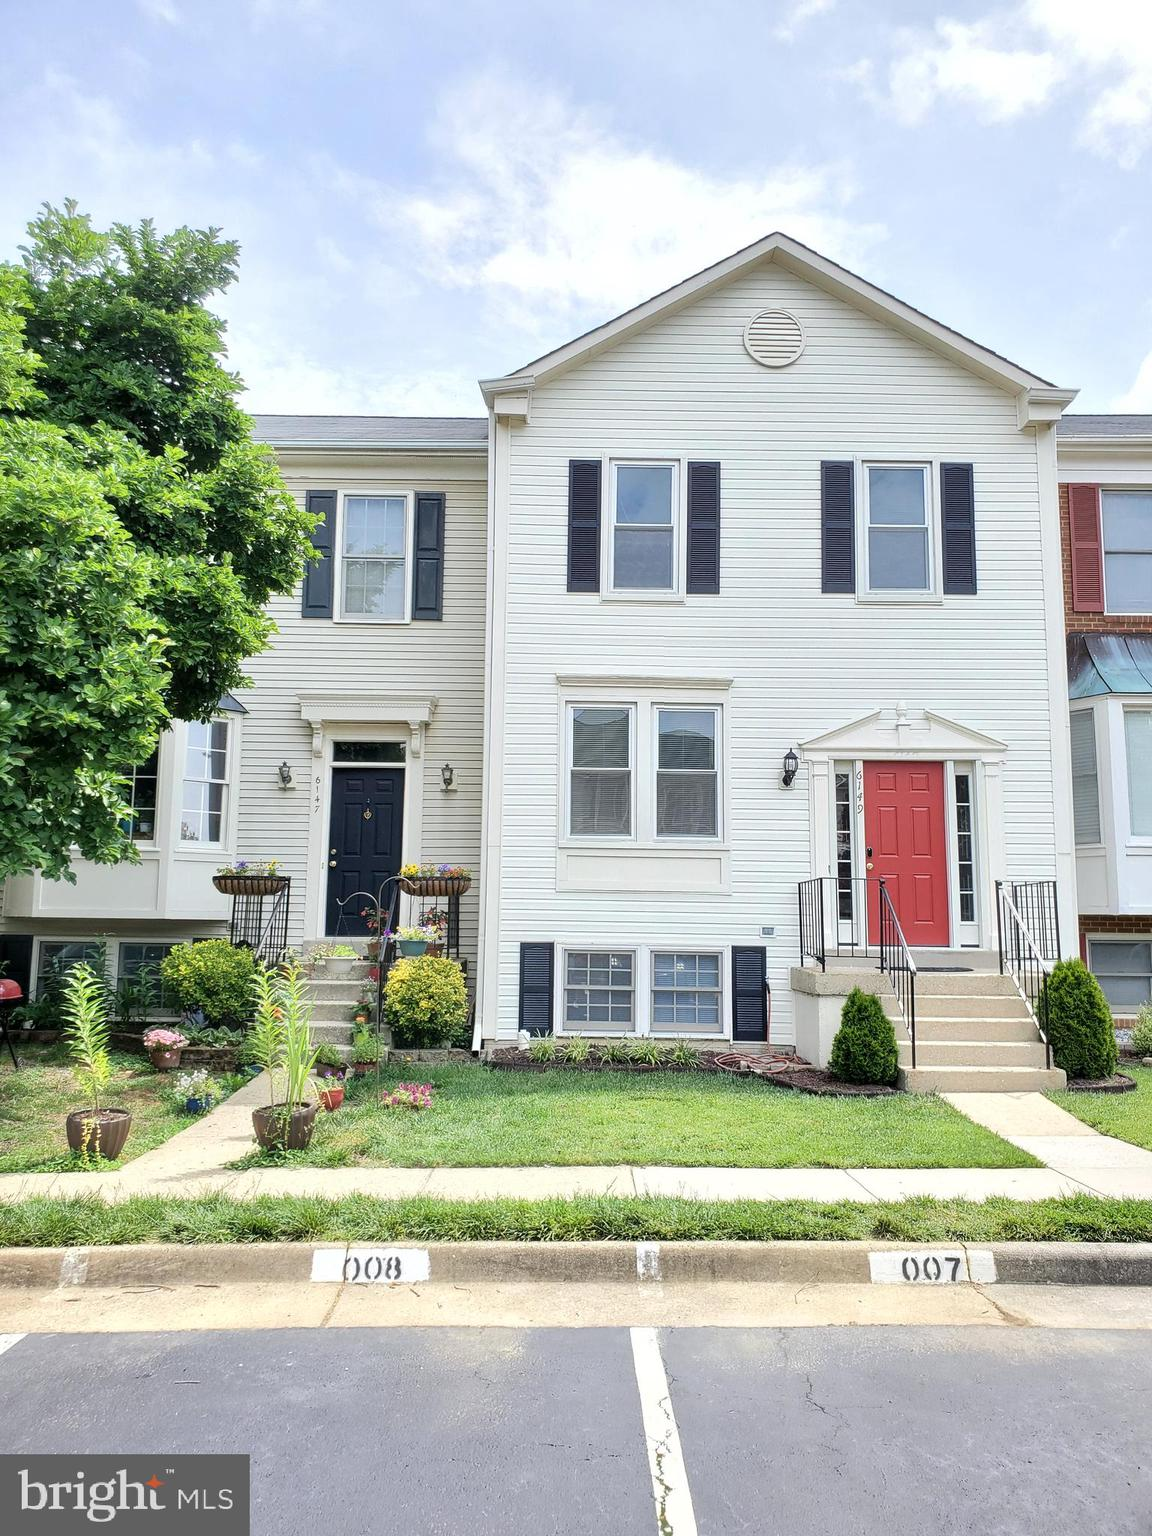 """Charming 4BR 3.5 BA Kingstowne Townhome with  New SS Appliances, newer HVAC, New Sidings & New Roof. 3BR 2BA upstairs, w/additional guest room/office and full bath in the basement. Rec room w/fireplace walks out to patio/yard. Open kitchen w/island, breakfast area, and granite counters. Great Kingstowne amenities. Close to shopping, restaurants, Metro, Ft. Belvoir. Just move in. """" New Appliances will be install on June 3rd."""""""